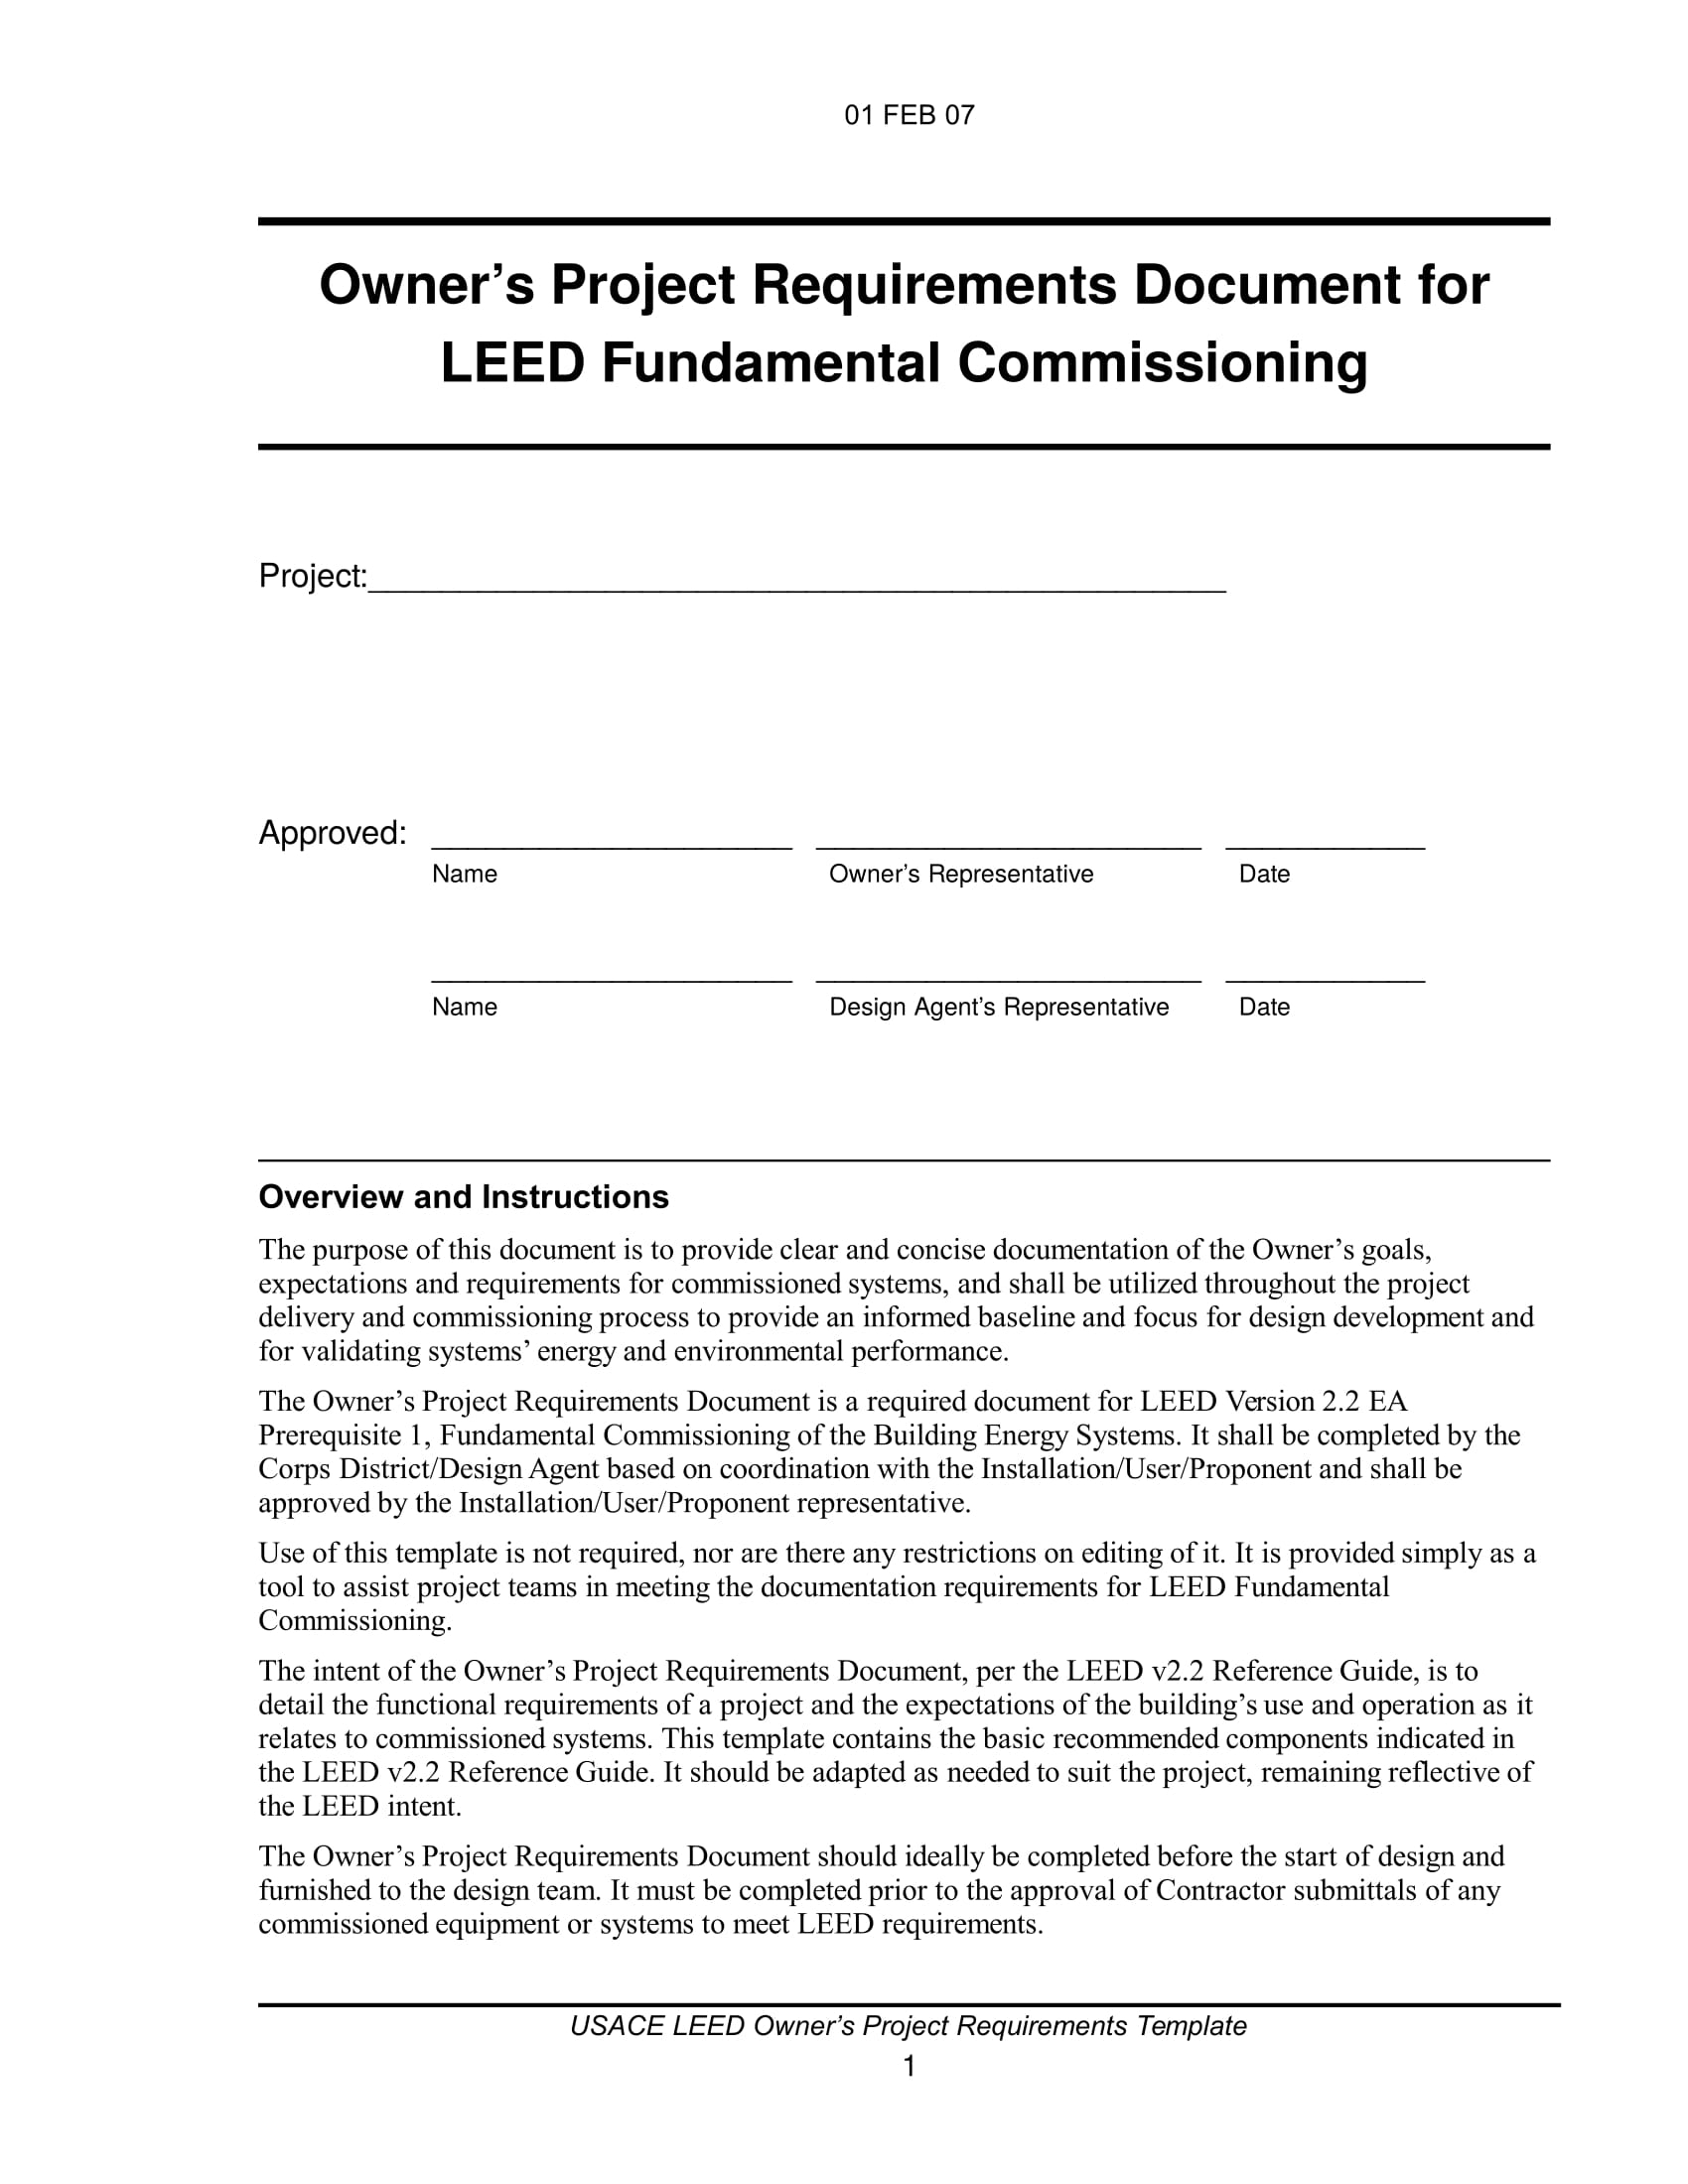 owners project requirements checklist template sample